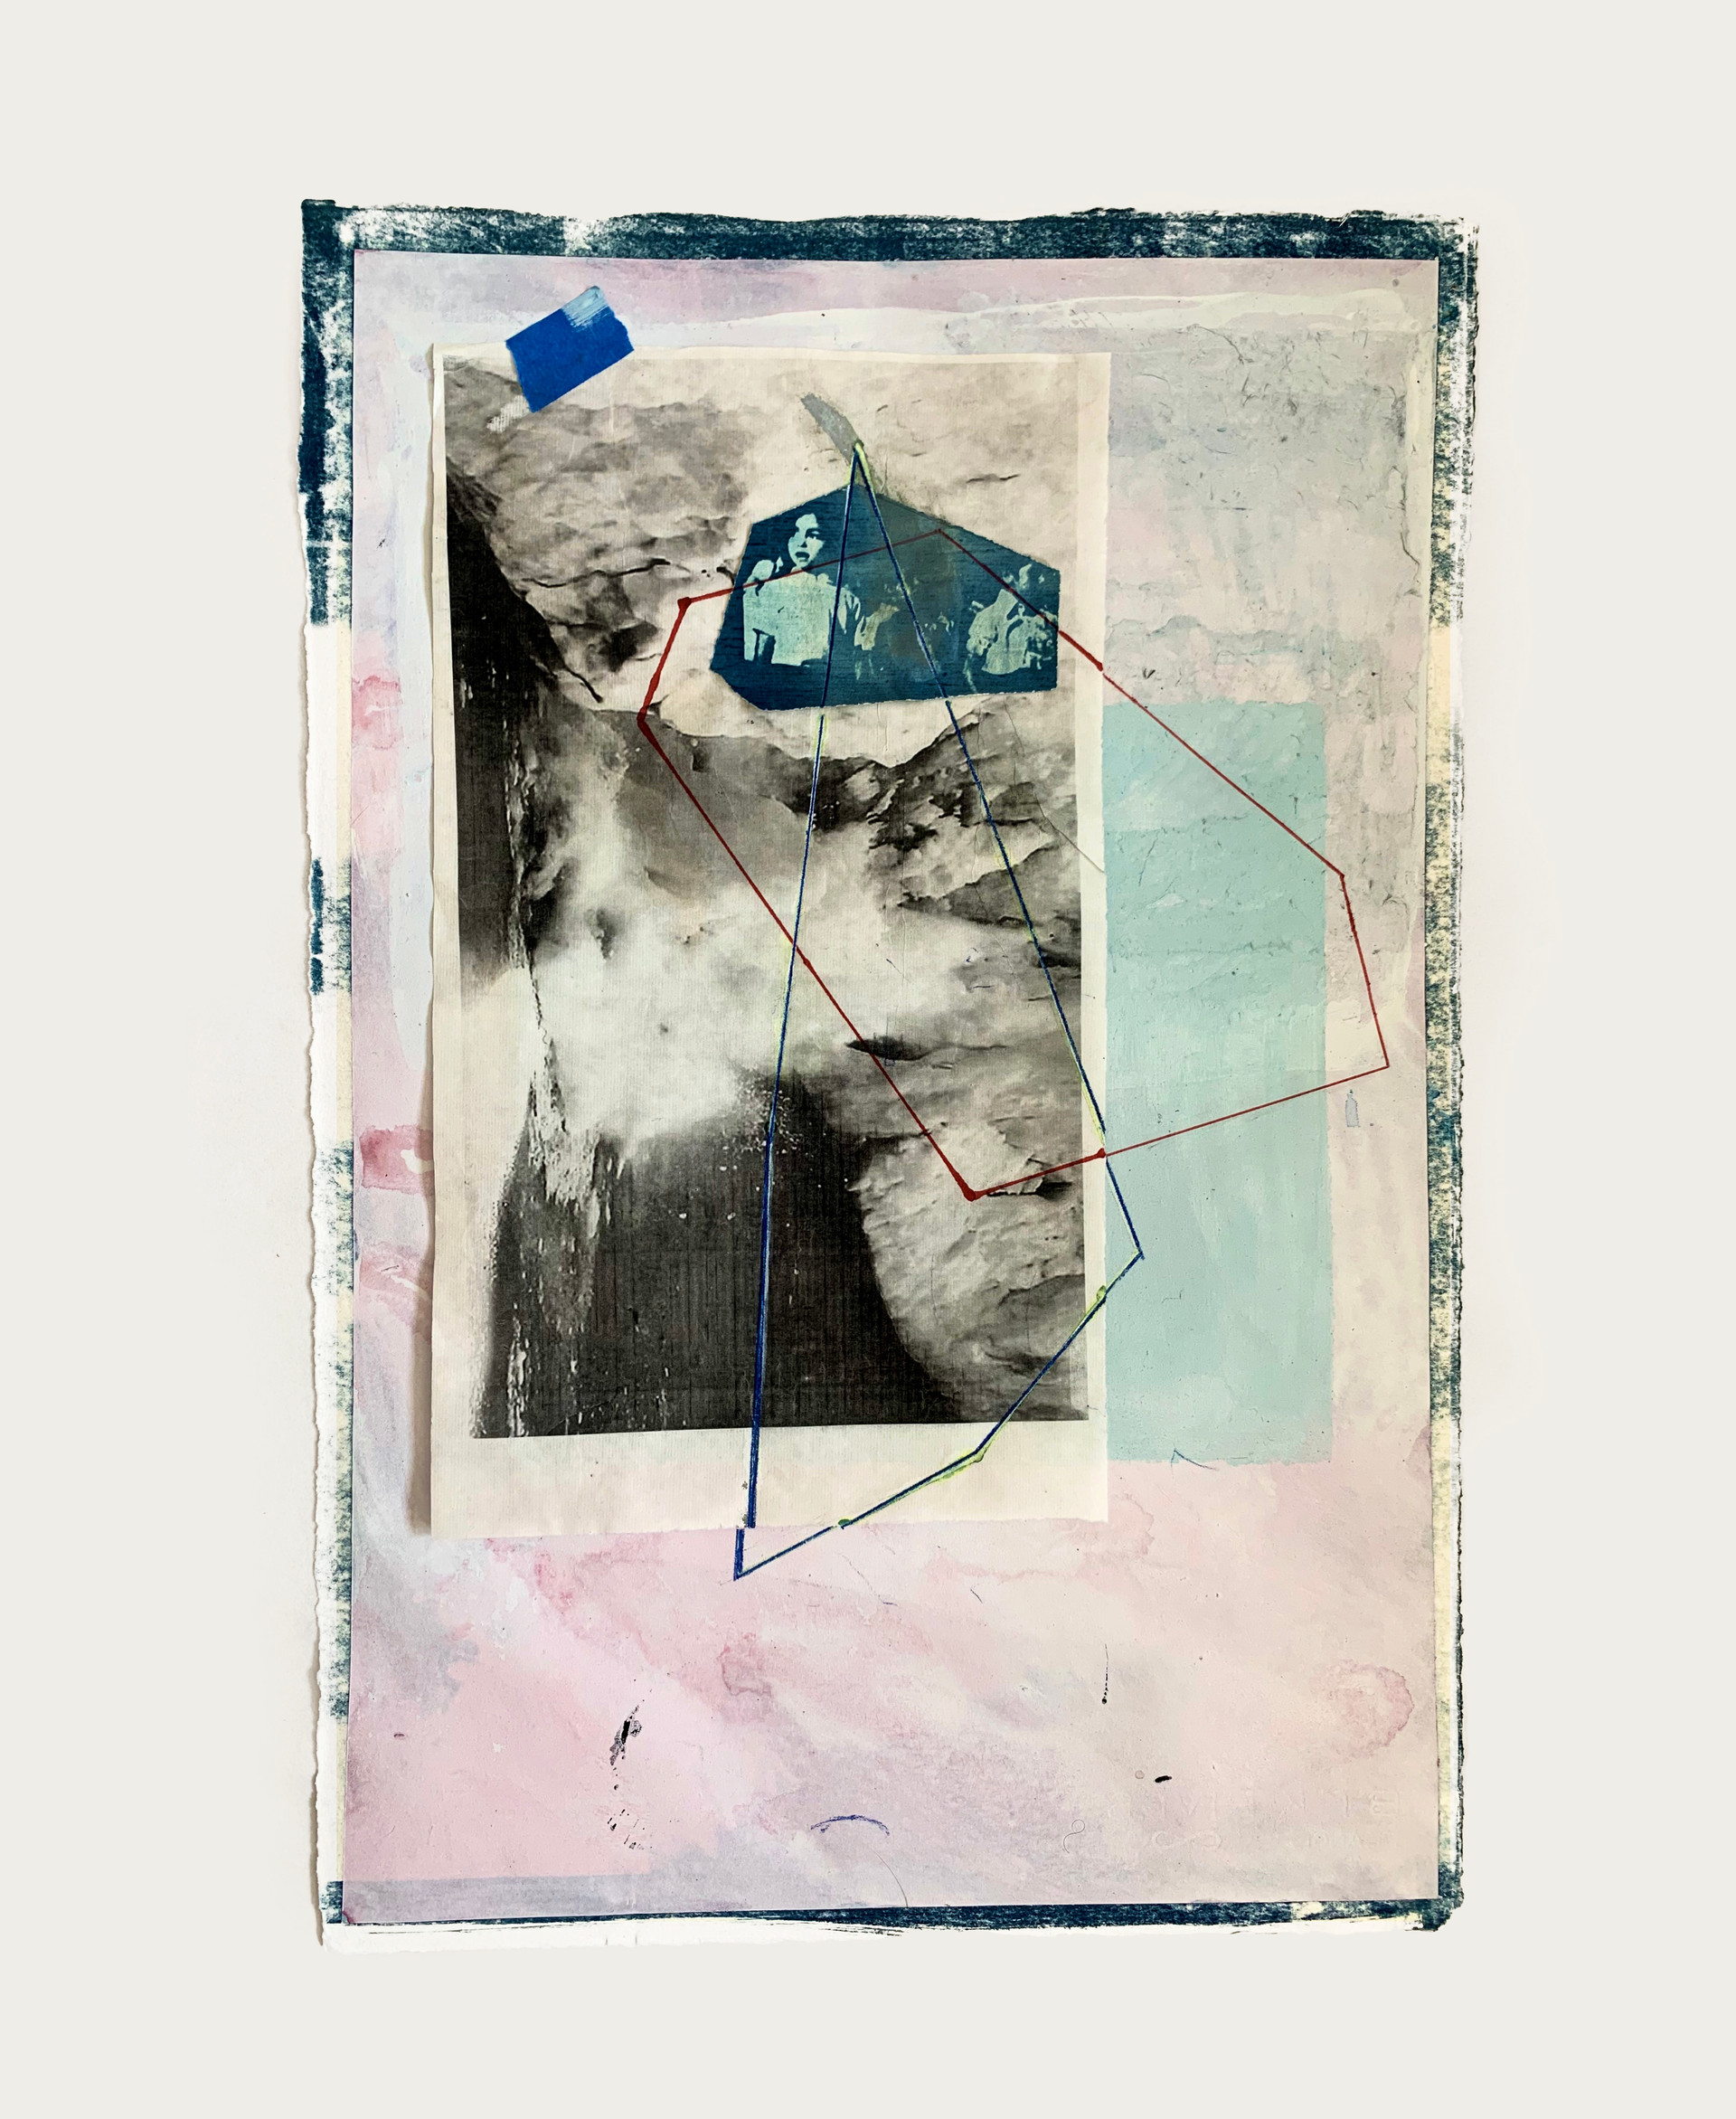 Untitled (study for hum in pink and blue